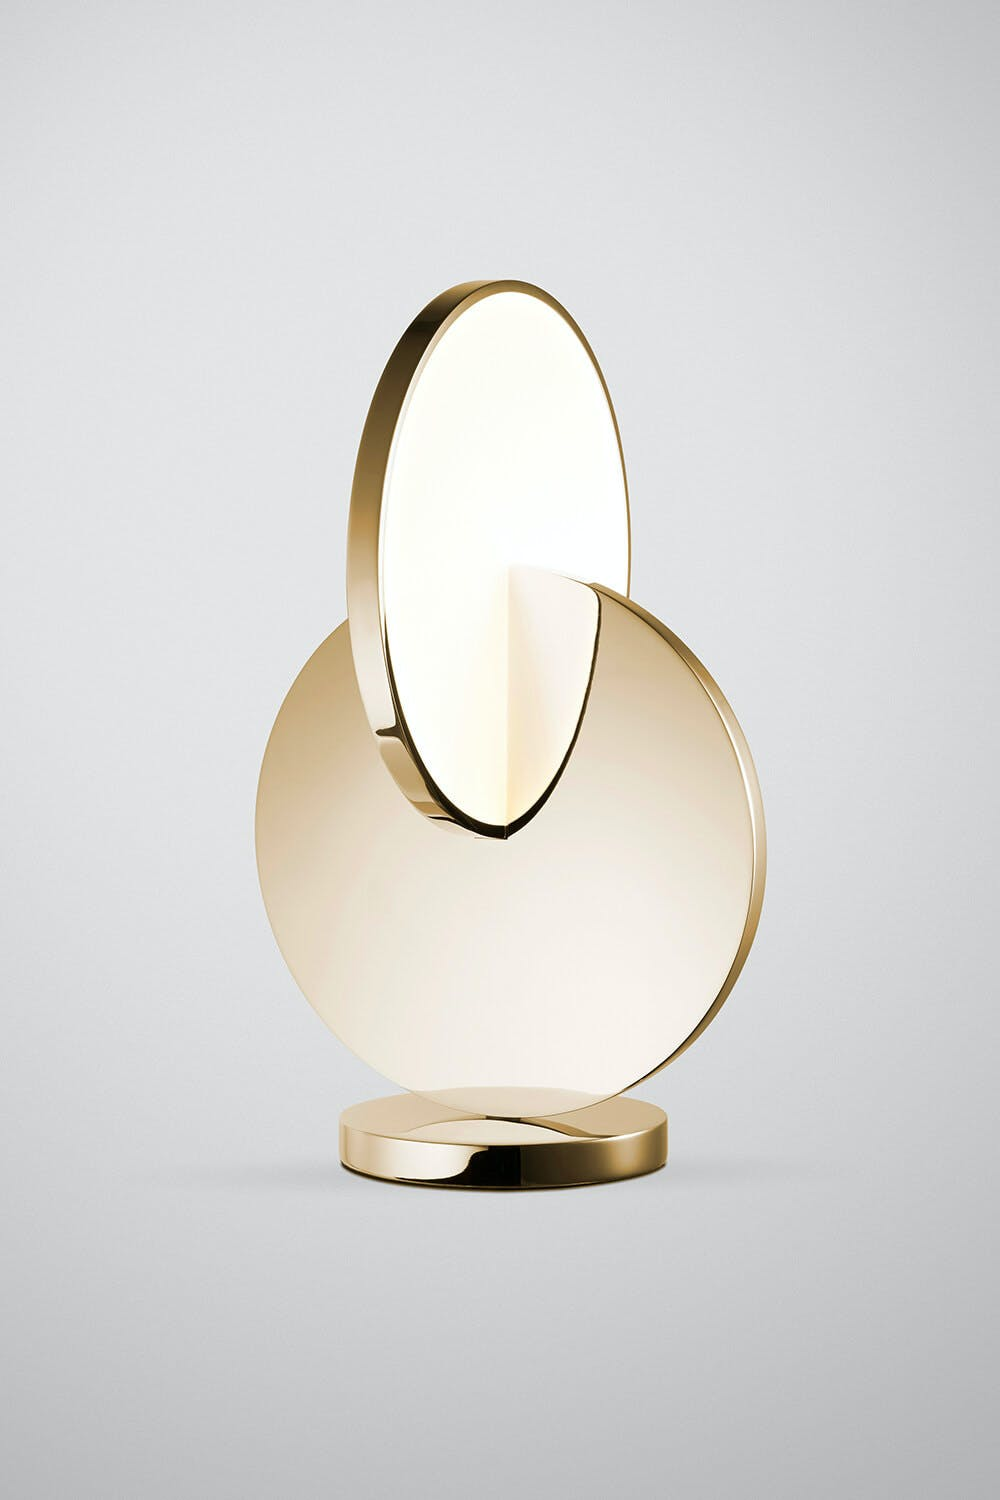 Lee-broom-polished-gold-eclipse-table-lamp-haute-living